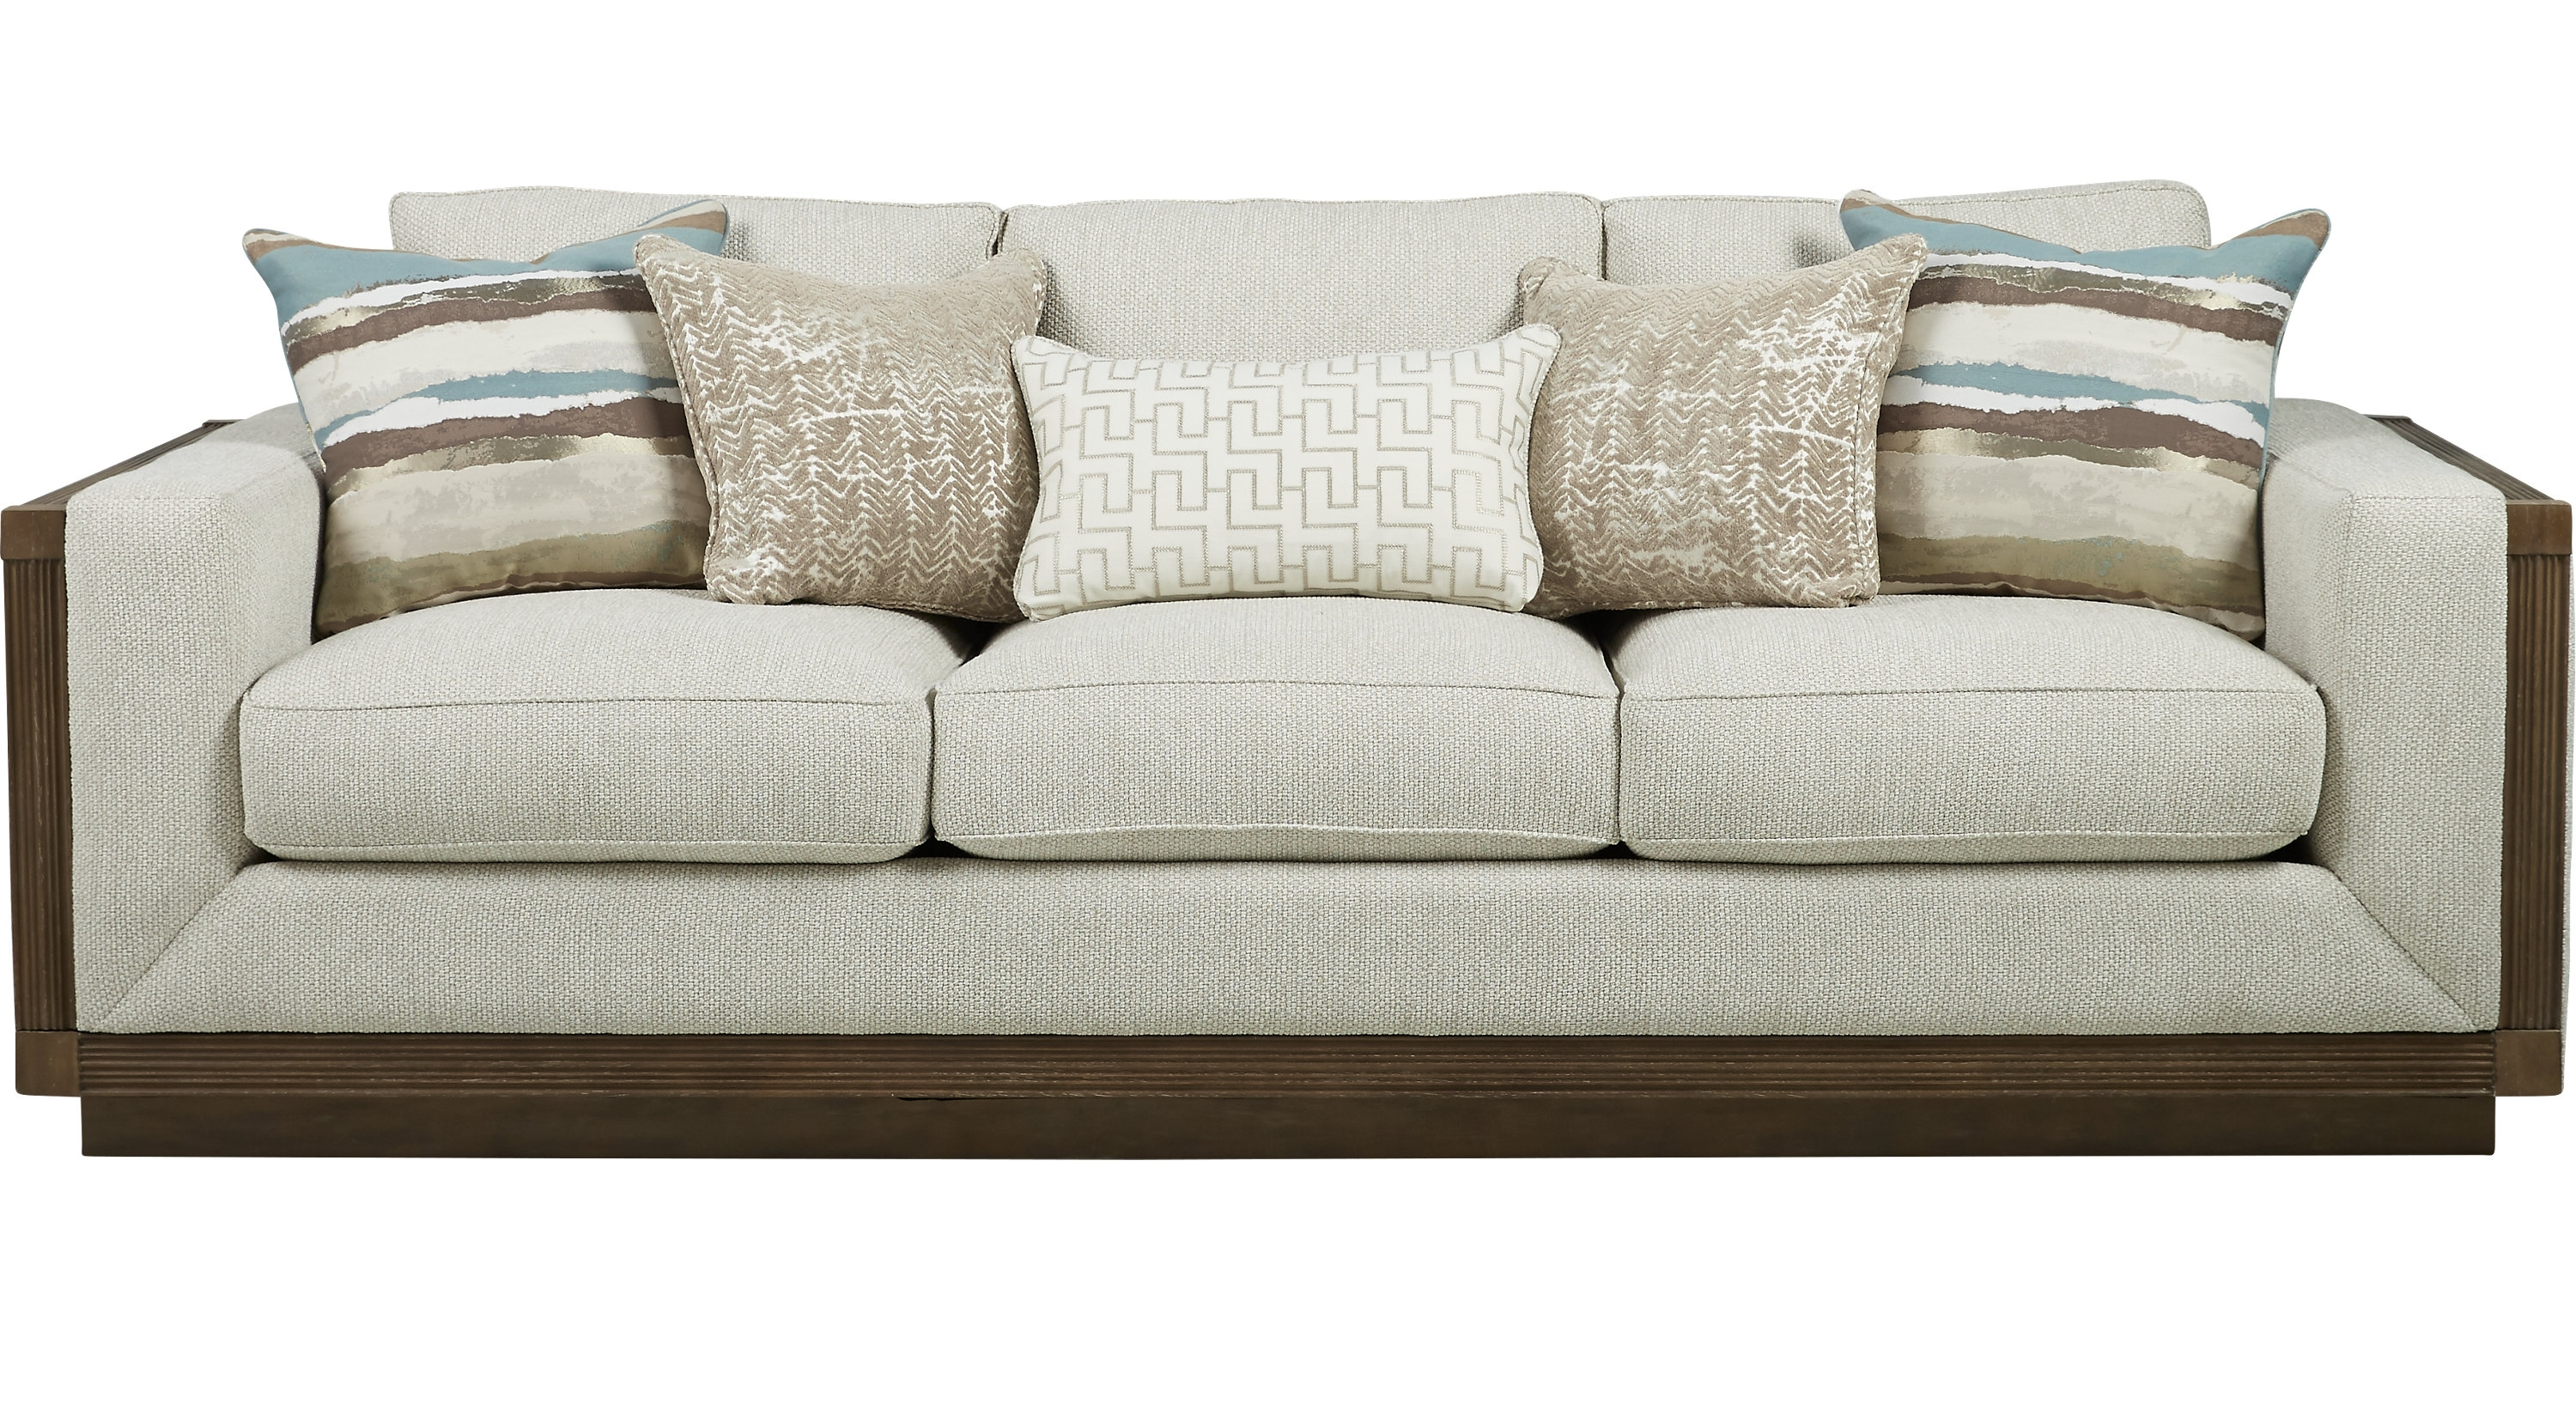 Most Popular Cindy Crawford Sofas With Regard To Best Good Cindy Crawford Couches # (View 13 of 15)